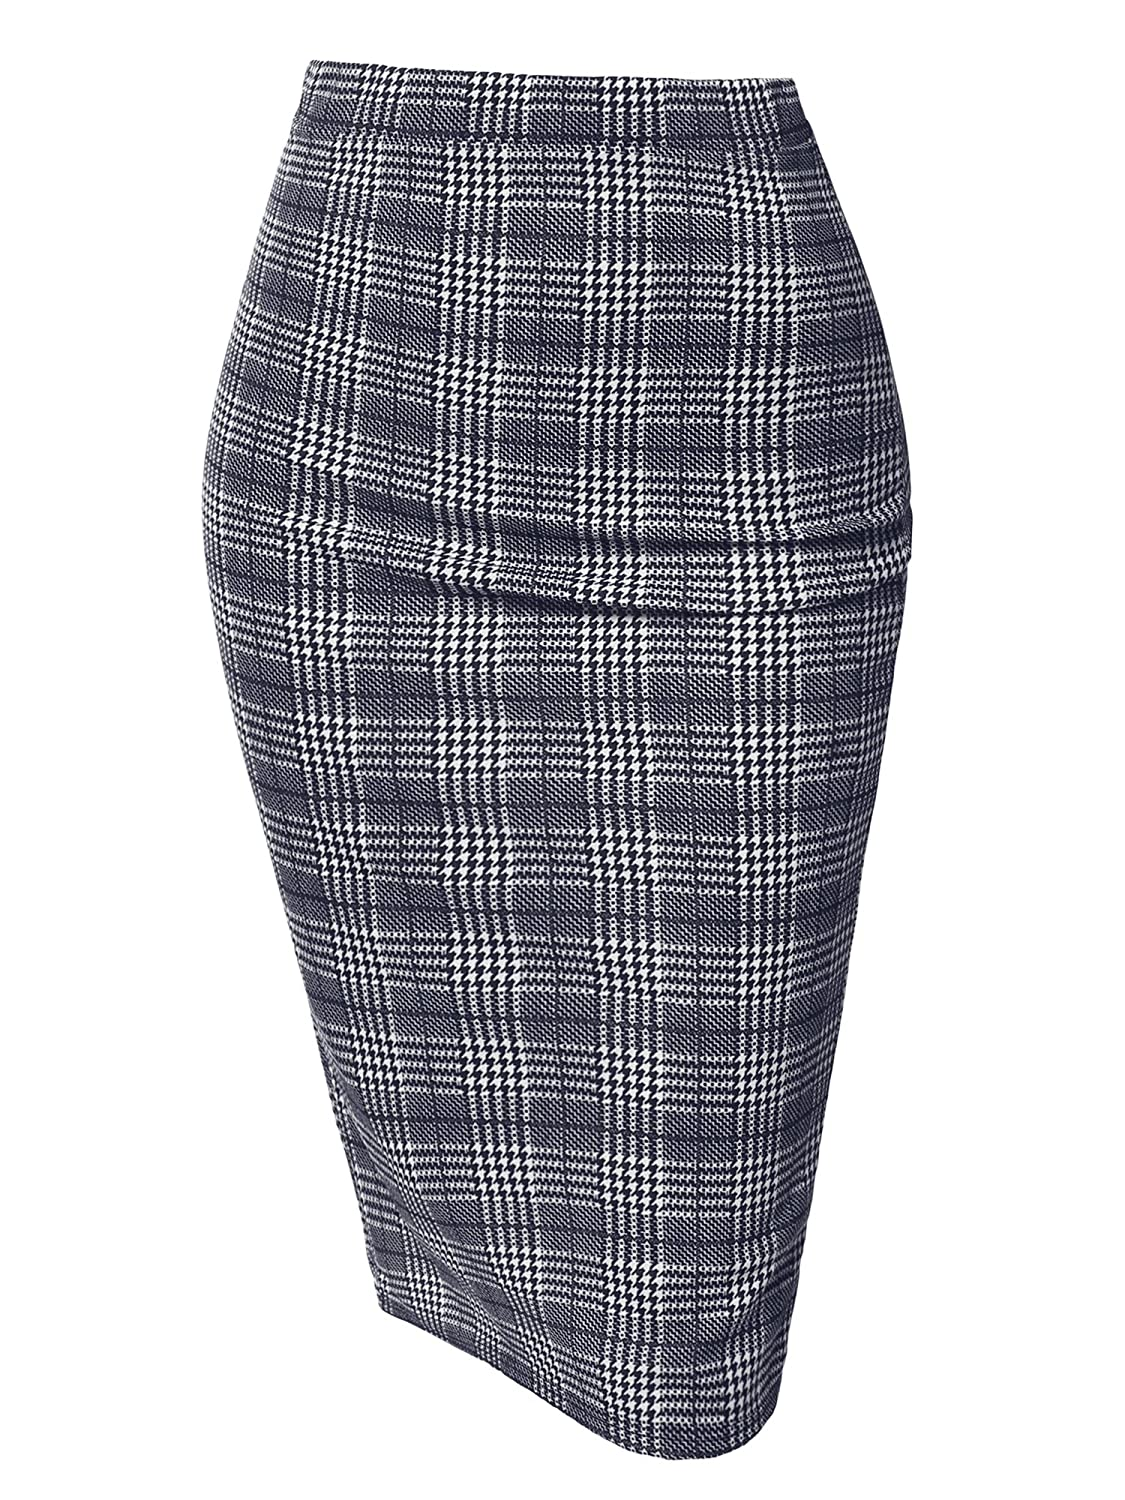 Aawskm0001 Navy White Awesome21 Women's Fitted Stretch Solid Print High Waist Midi Pencil Skirt  Made in USA